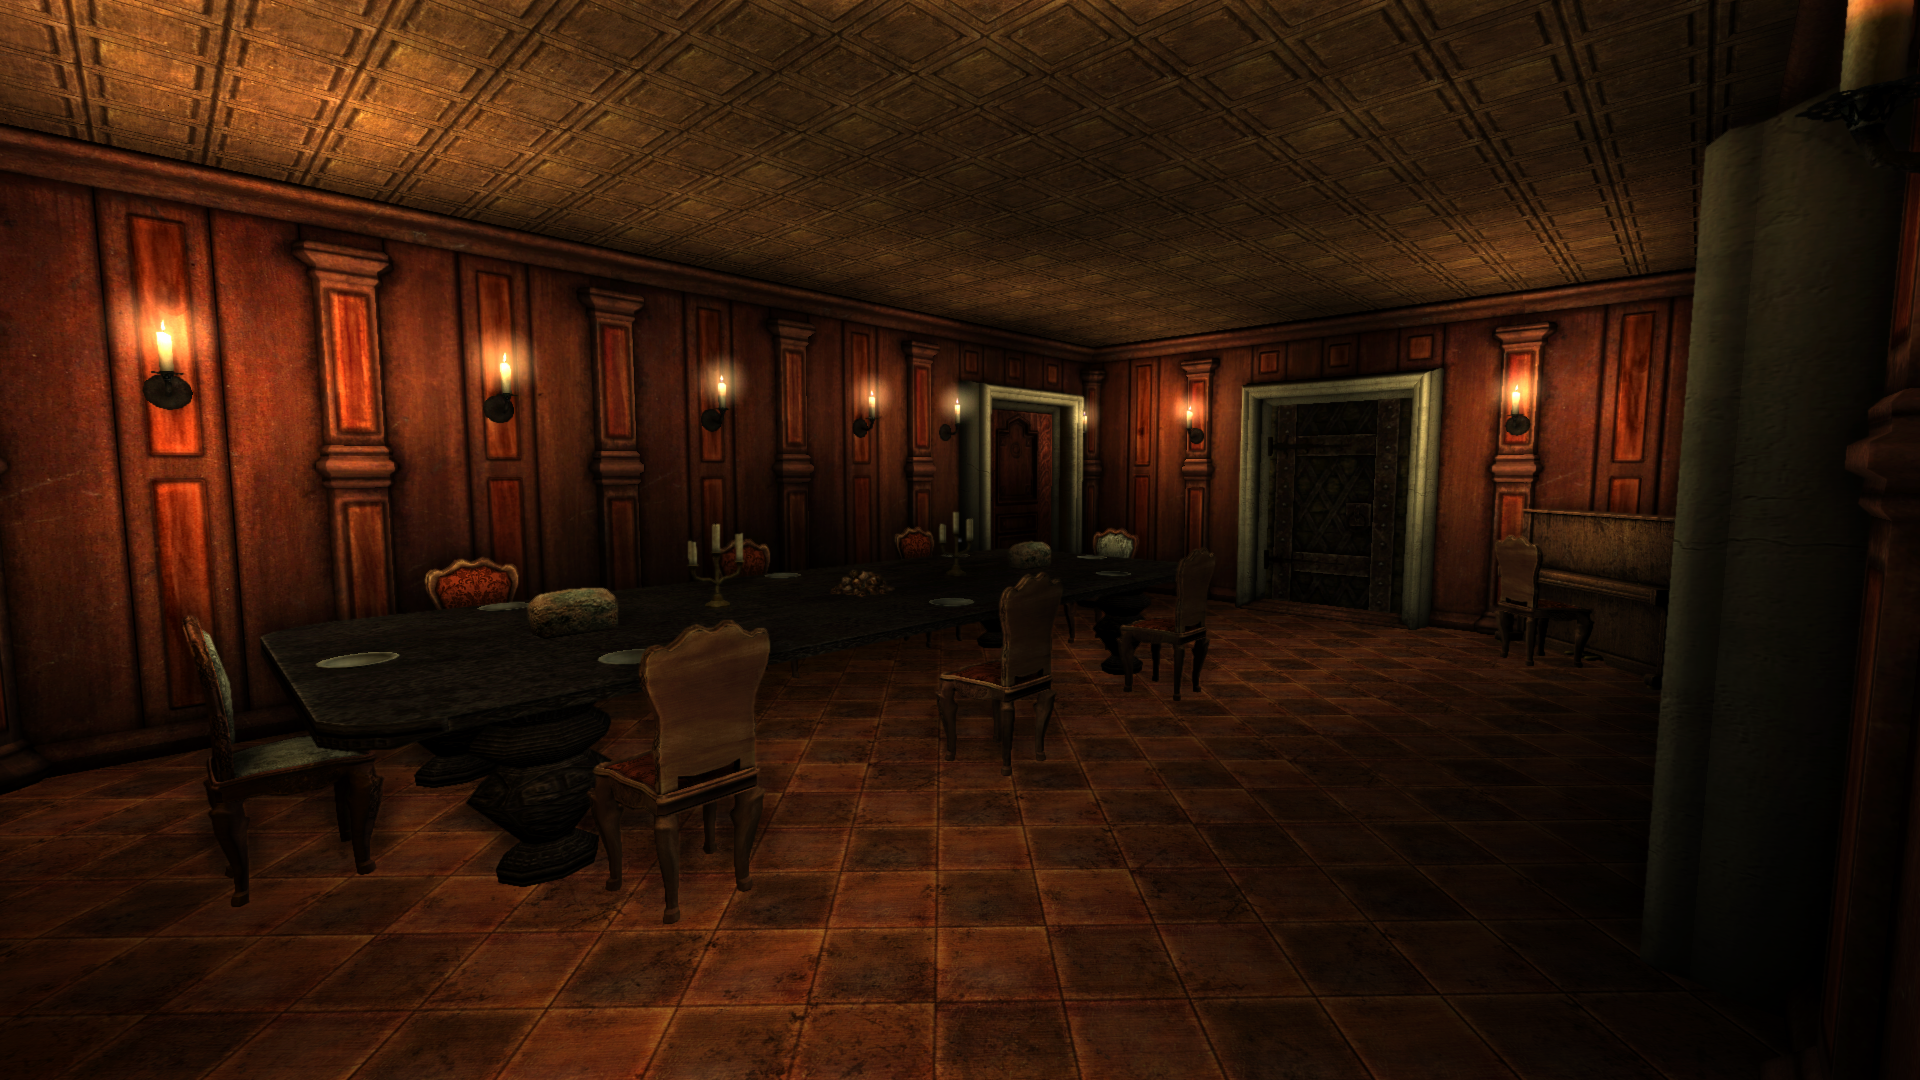 Dining Room Image Case 10 00 Murderous Mansion Mod For